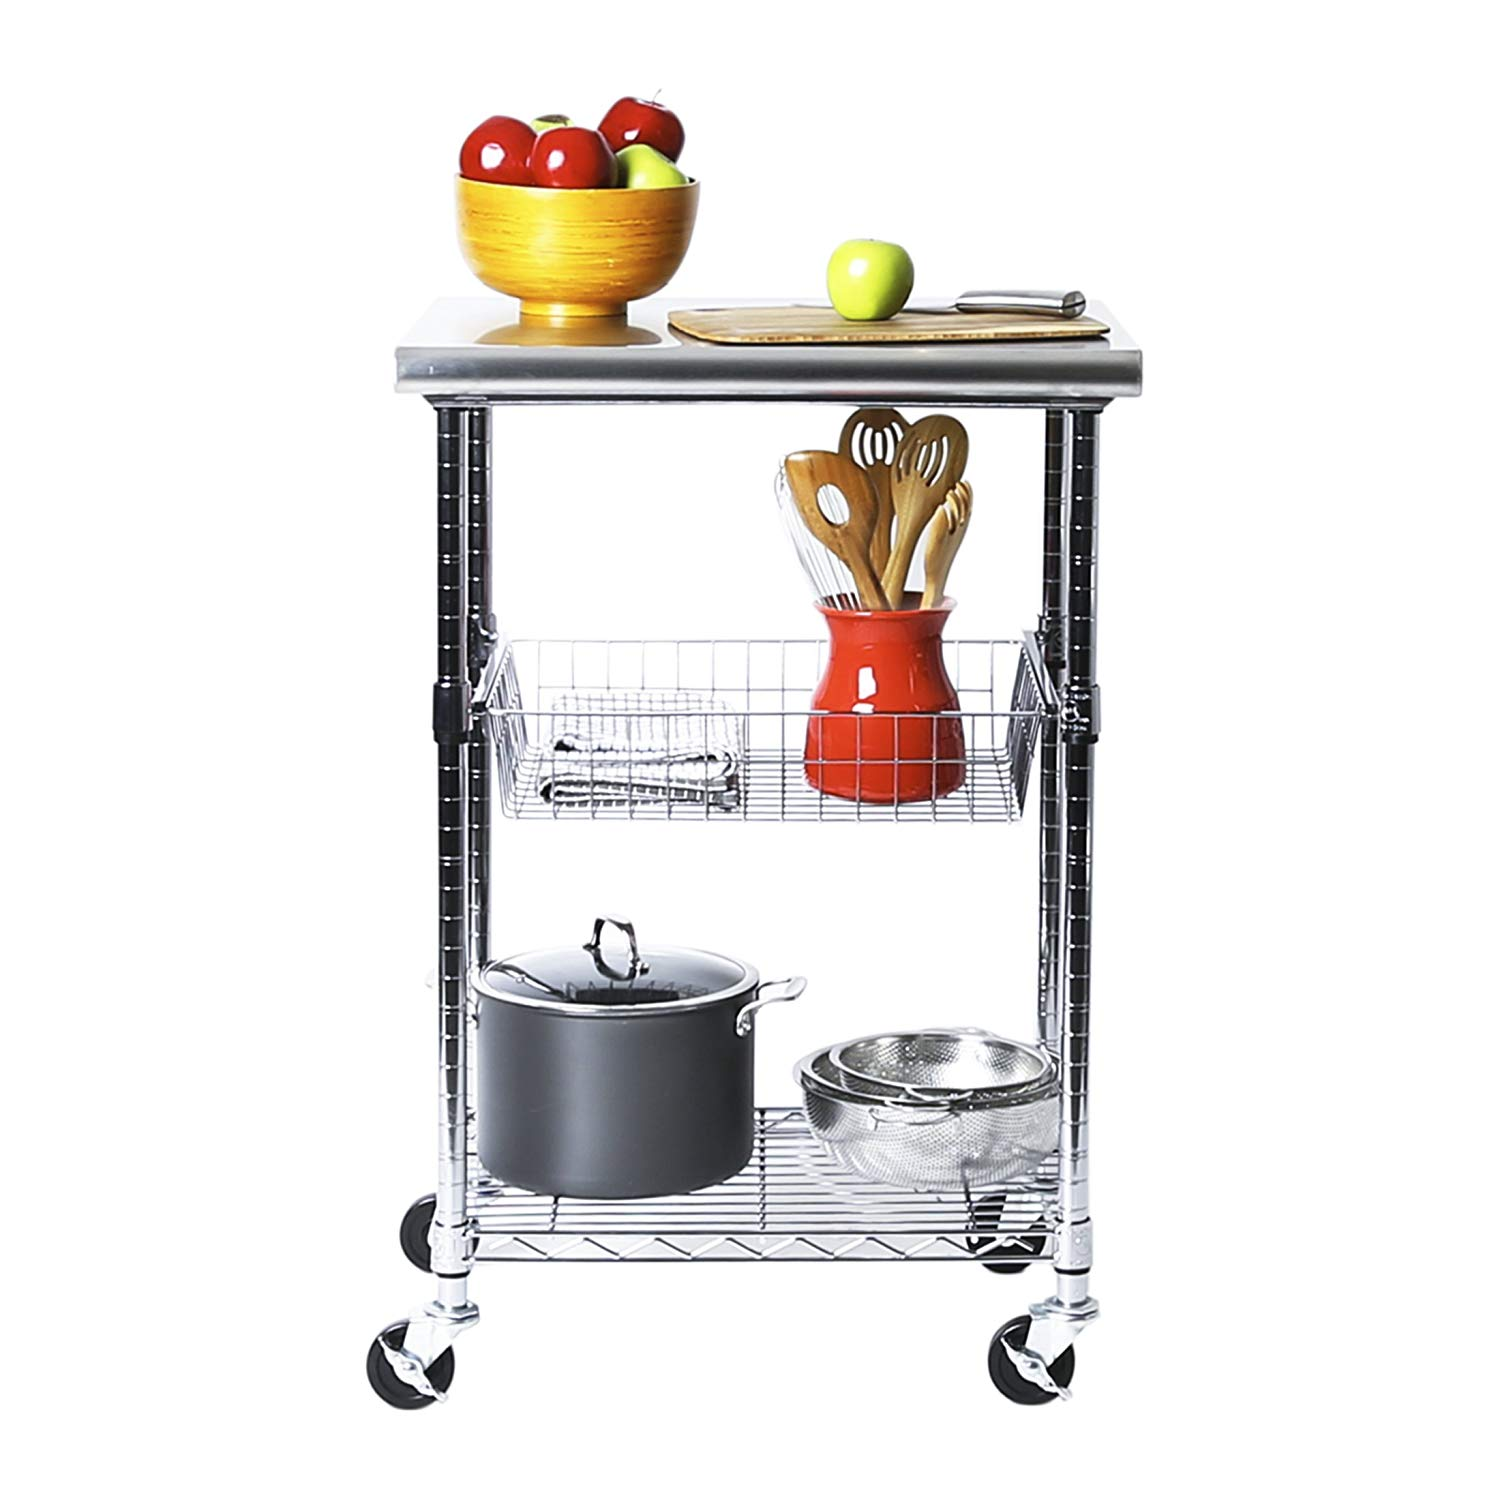 Seville classics stainless-steel nsf-certified professional kitchen work table cart